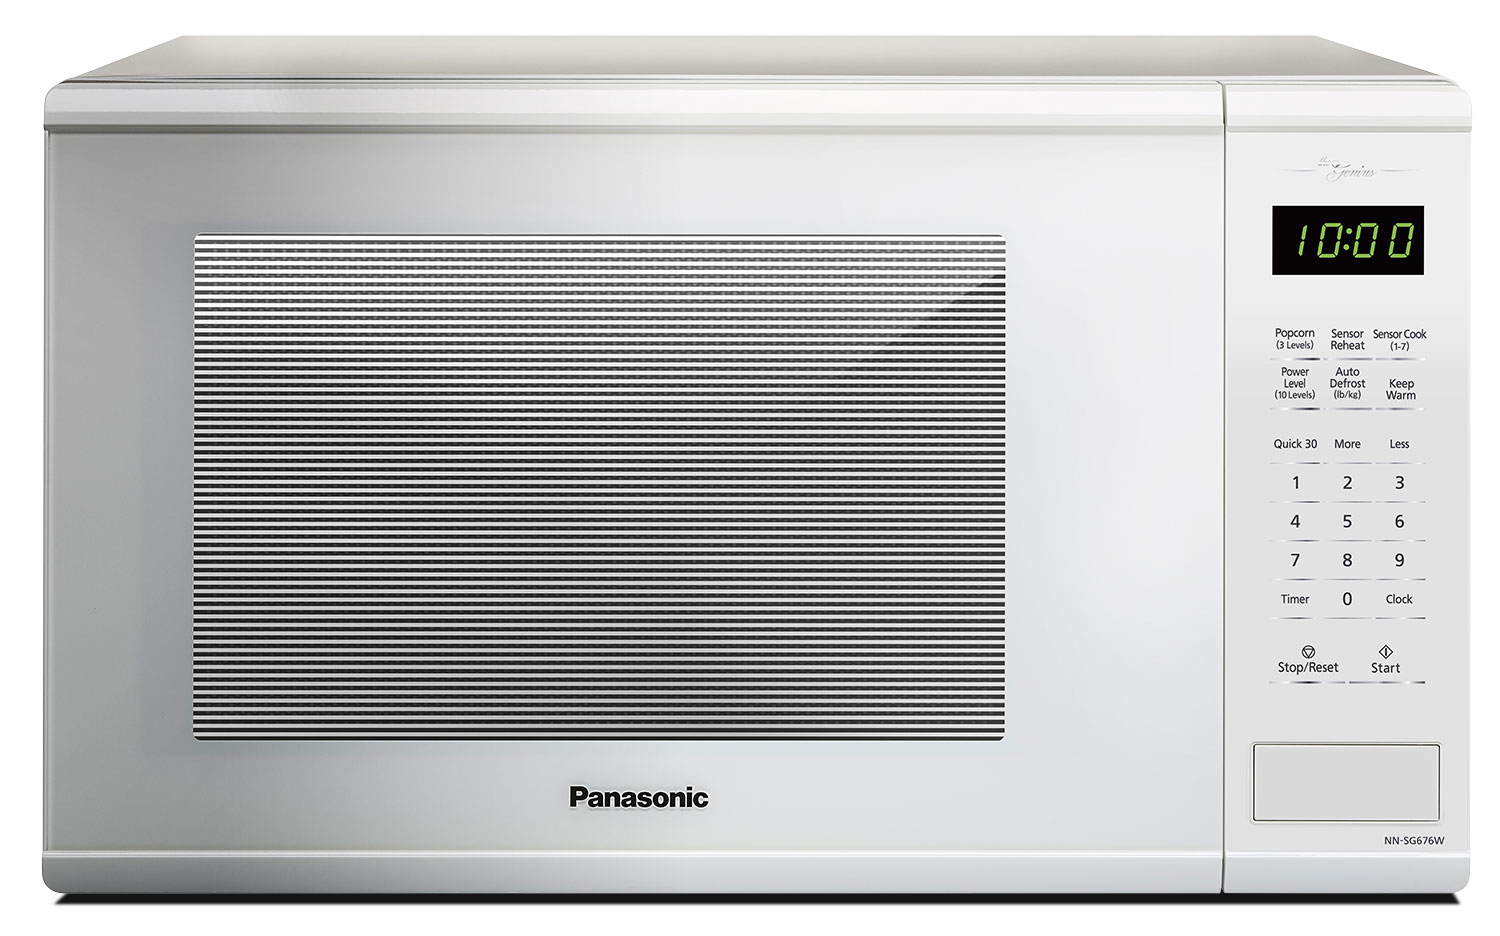 Panasonic White Countertop Microwave w/ Sensor Cooking (1.3 Cu. Ft.) - NNSG676W